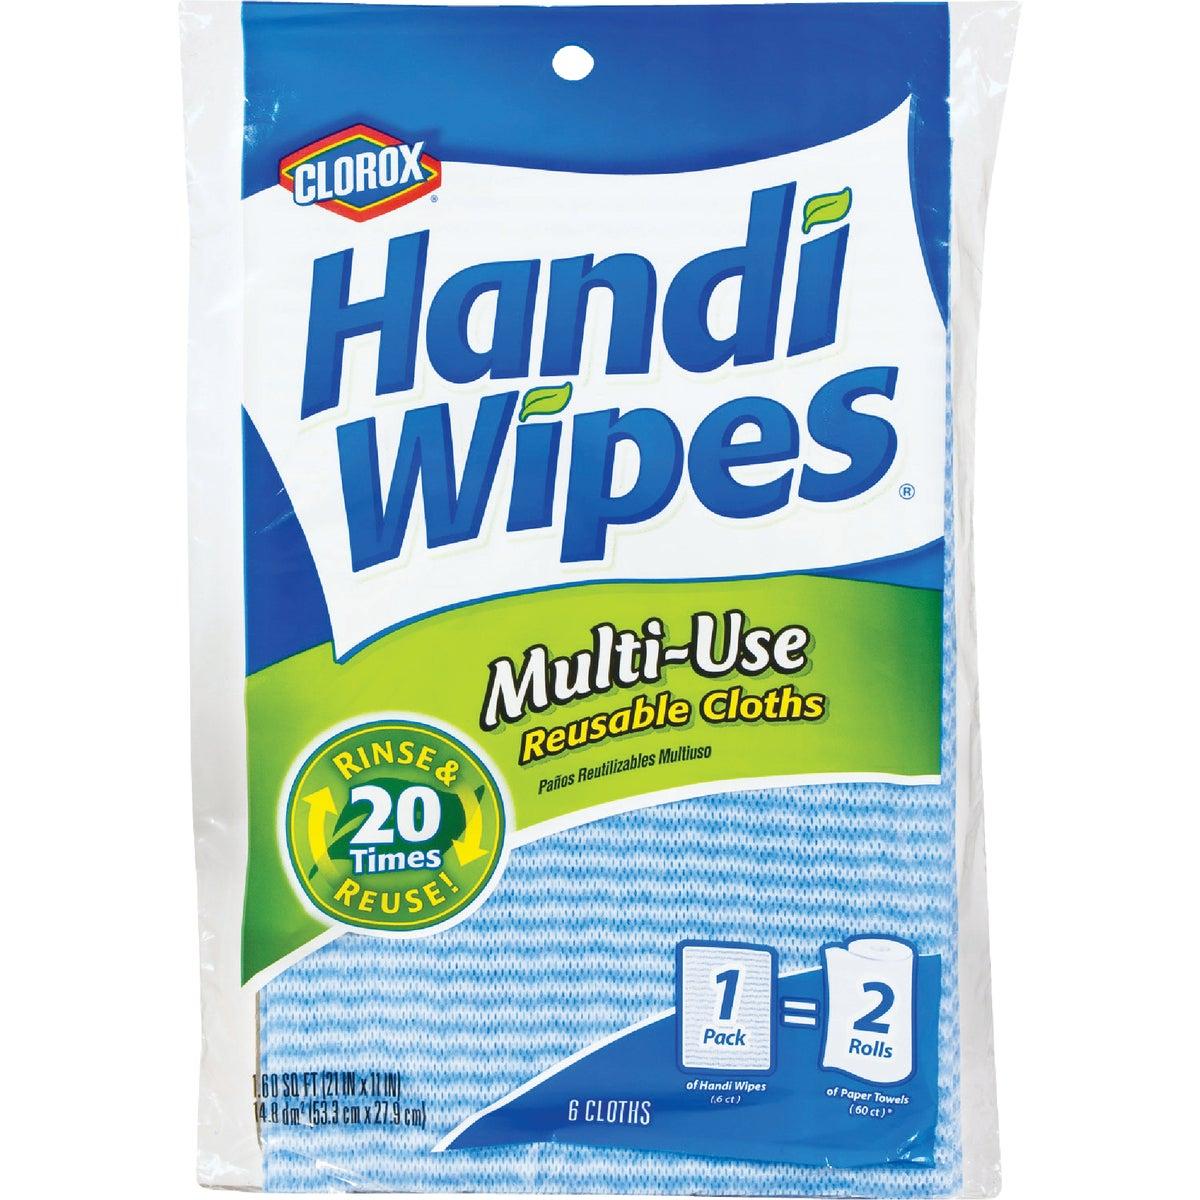 Reuseable Wipes